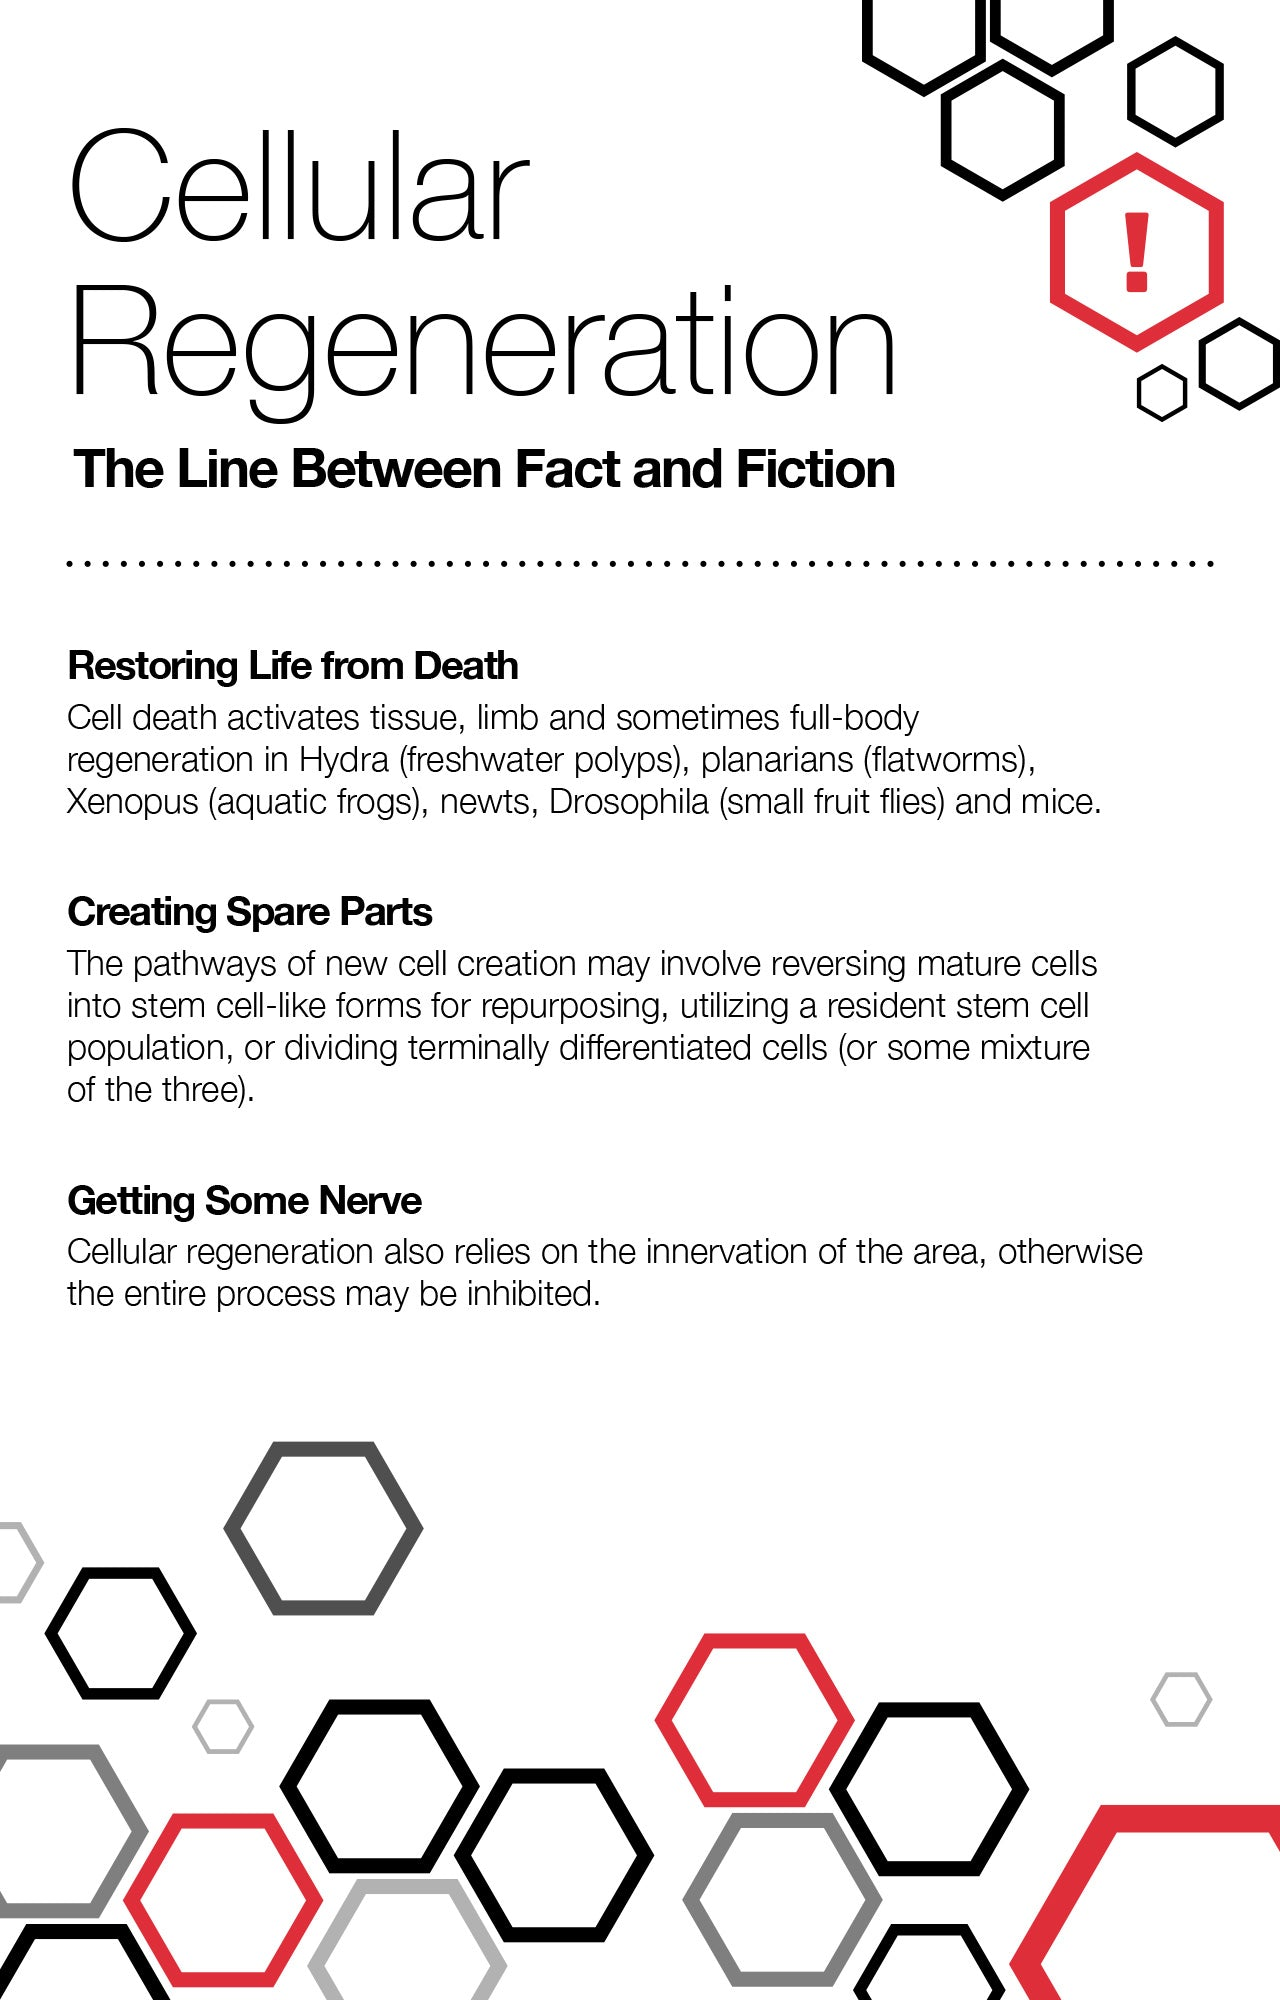 Cellular Regeneration: The Line Between Fact and Fiction